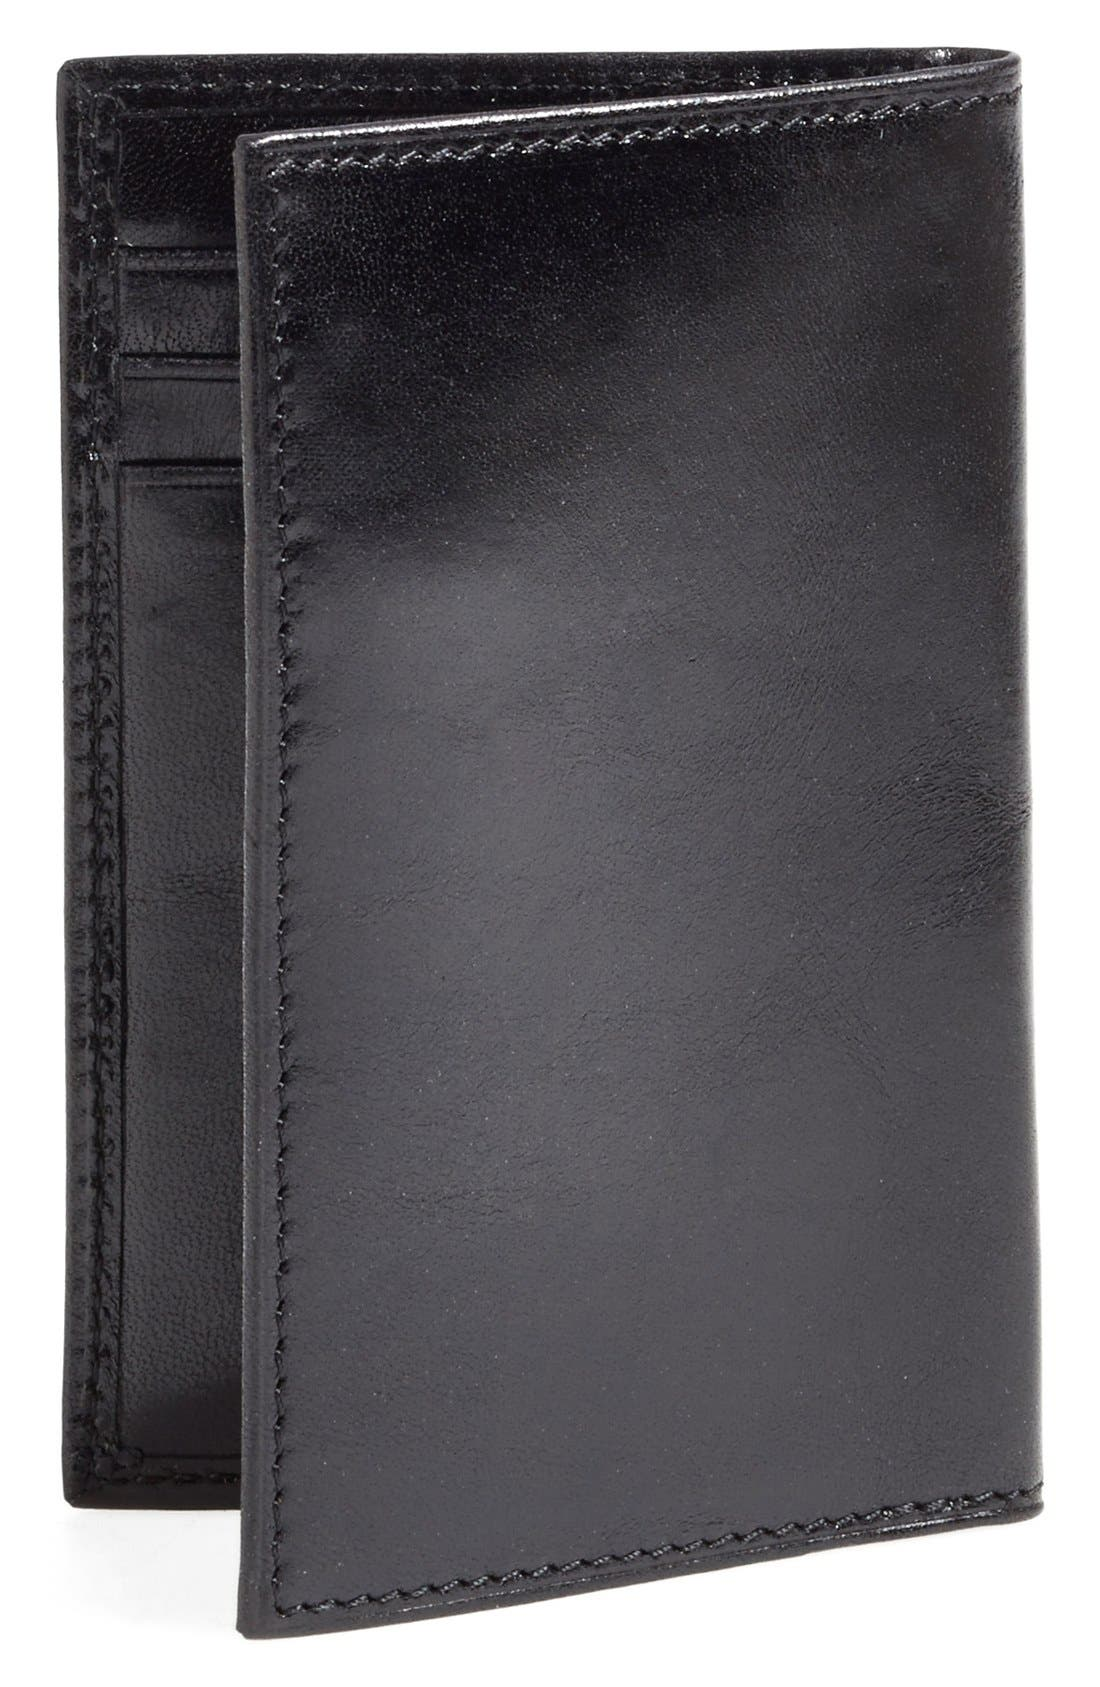 Alternate Image 2  - Bosca 'Old Leather' Card Case